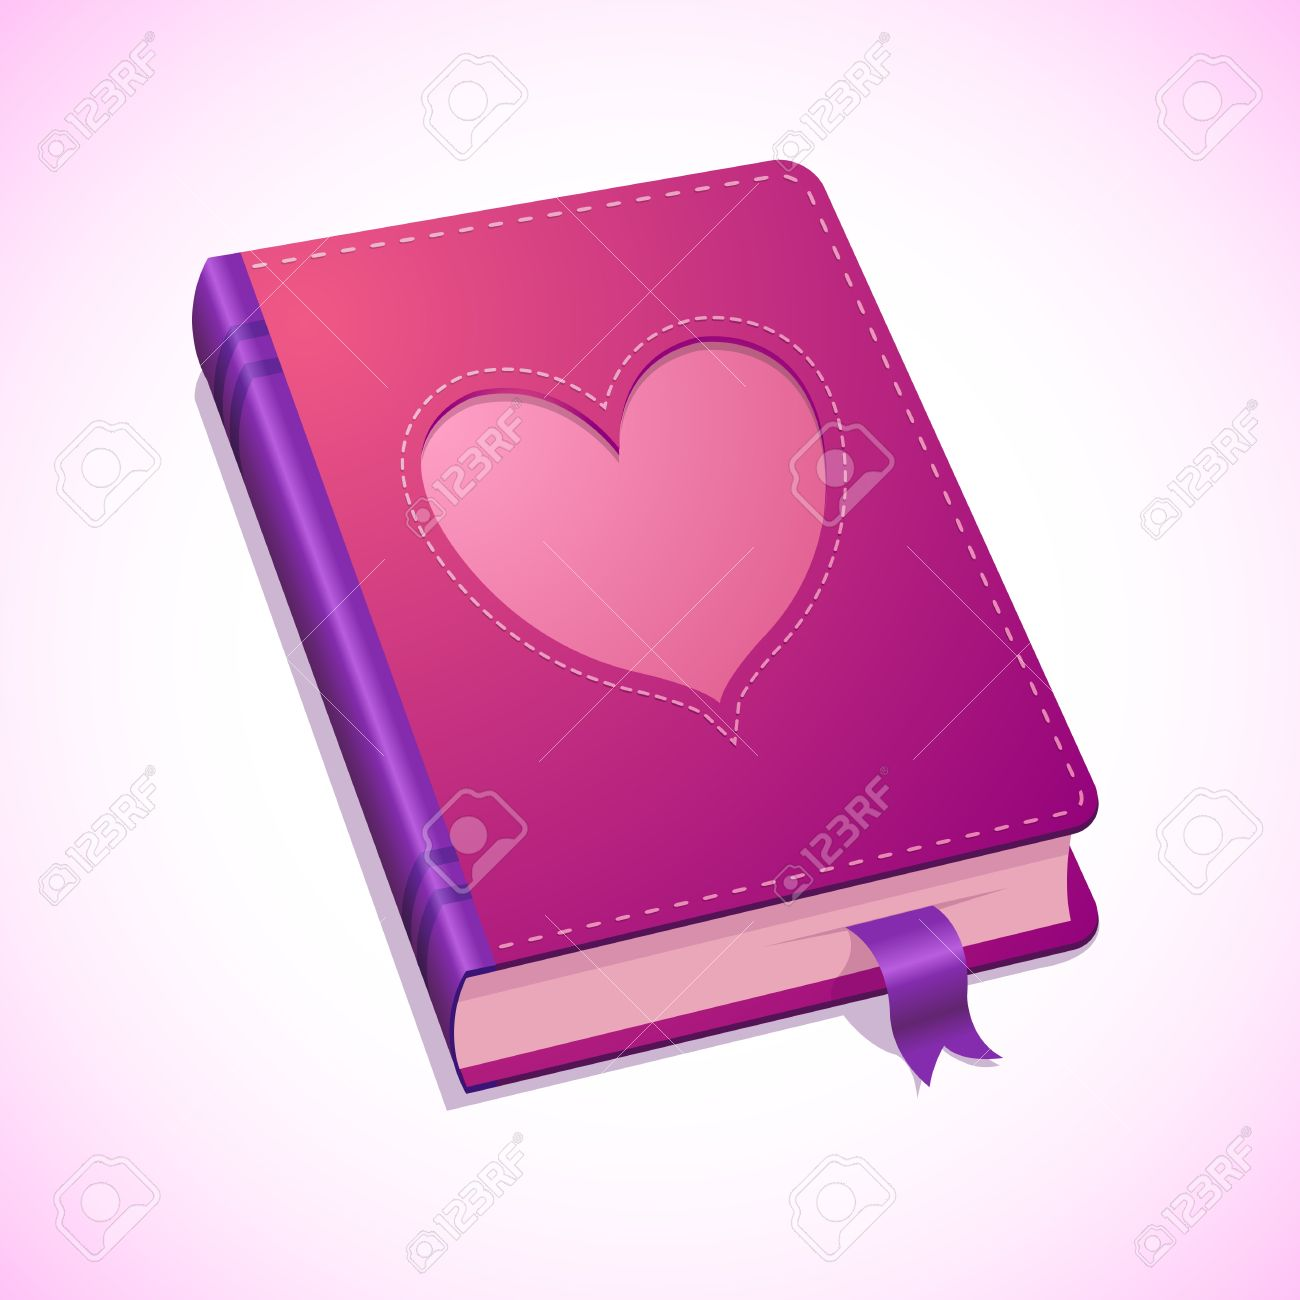 Illustration Of Pink Diary, With Heart For Valentines Day Royalty.